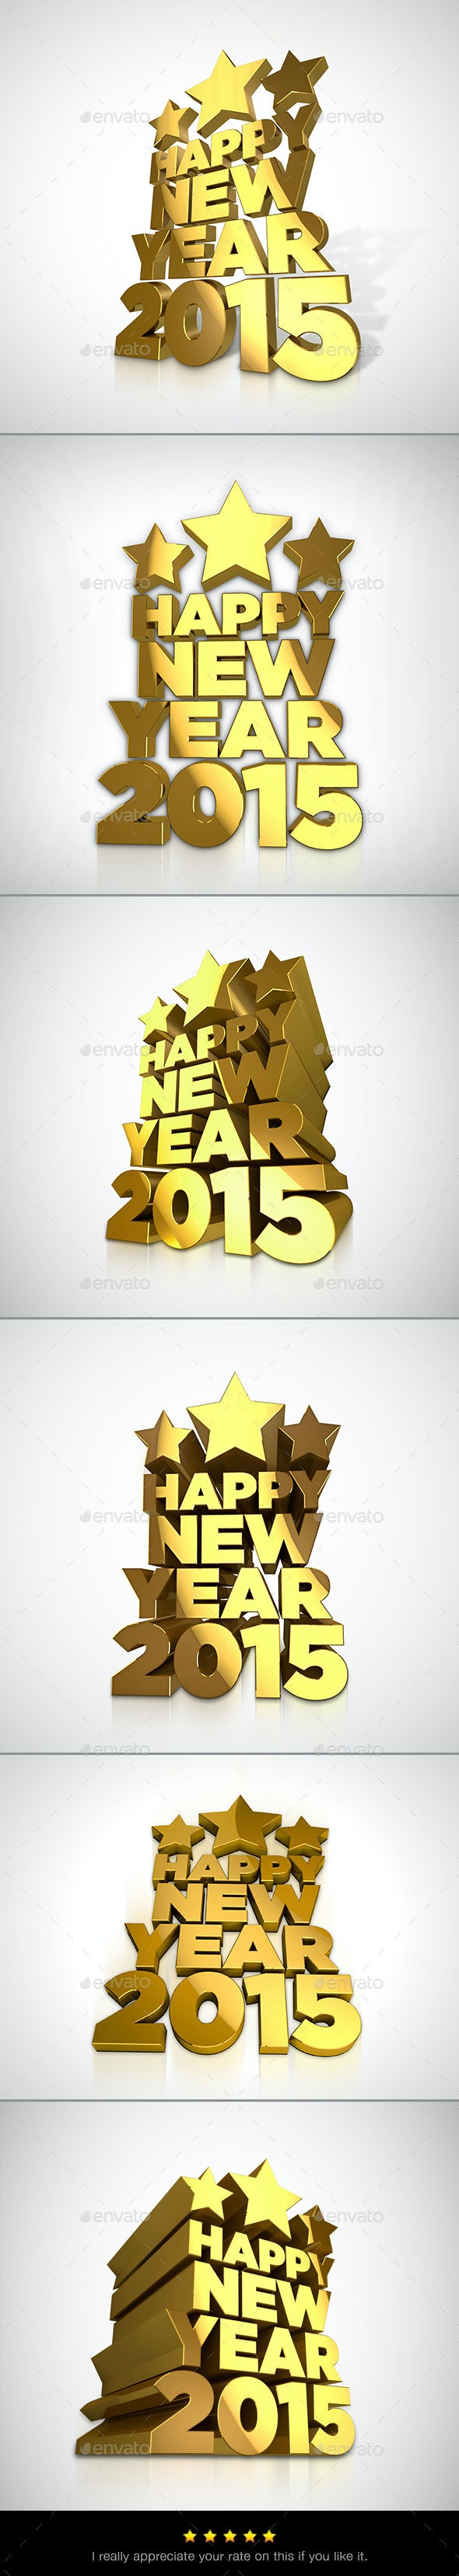 Happy New Year 2015 - 3D Backgrounds